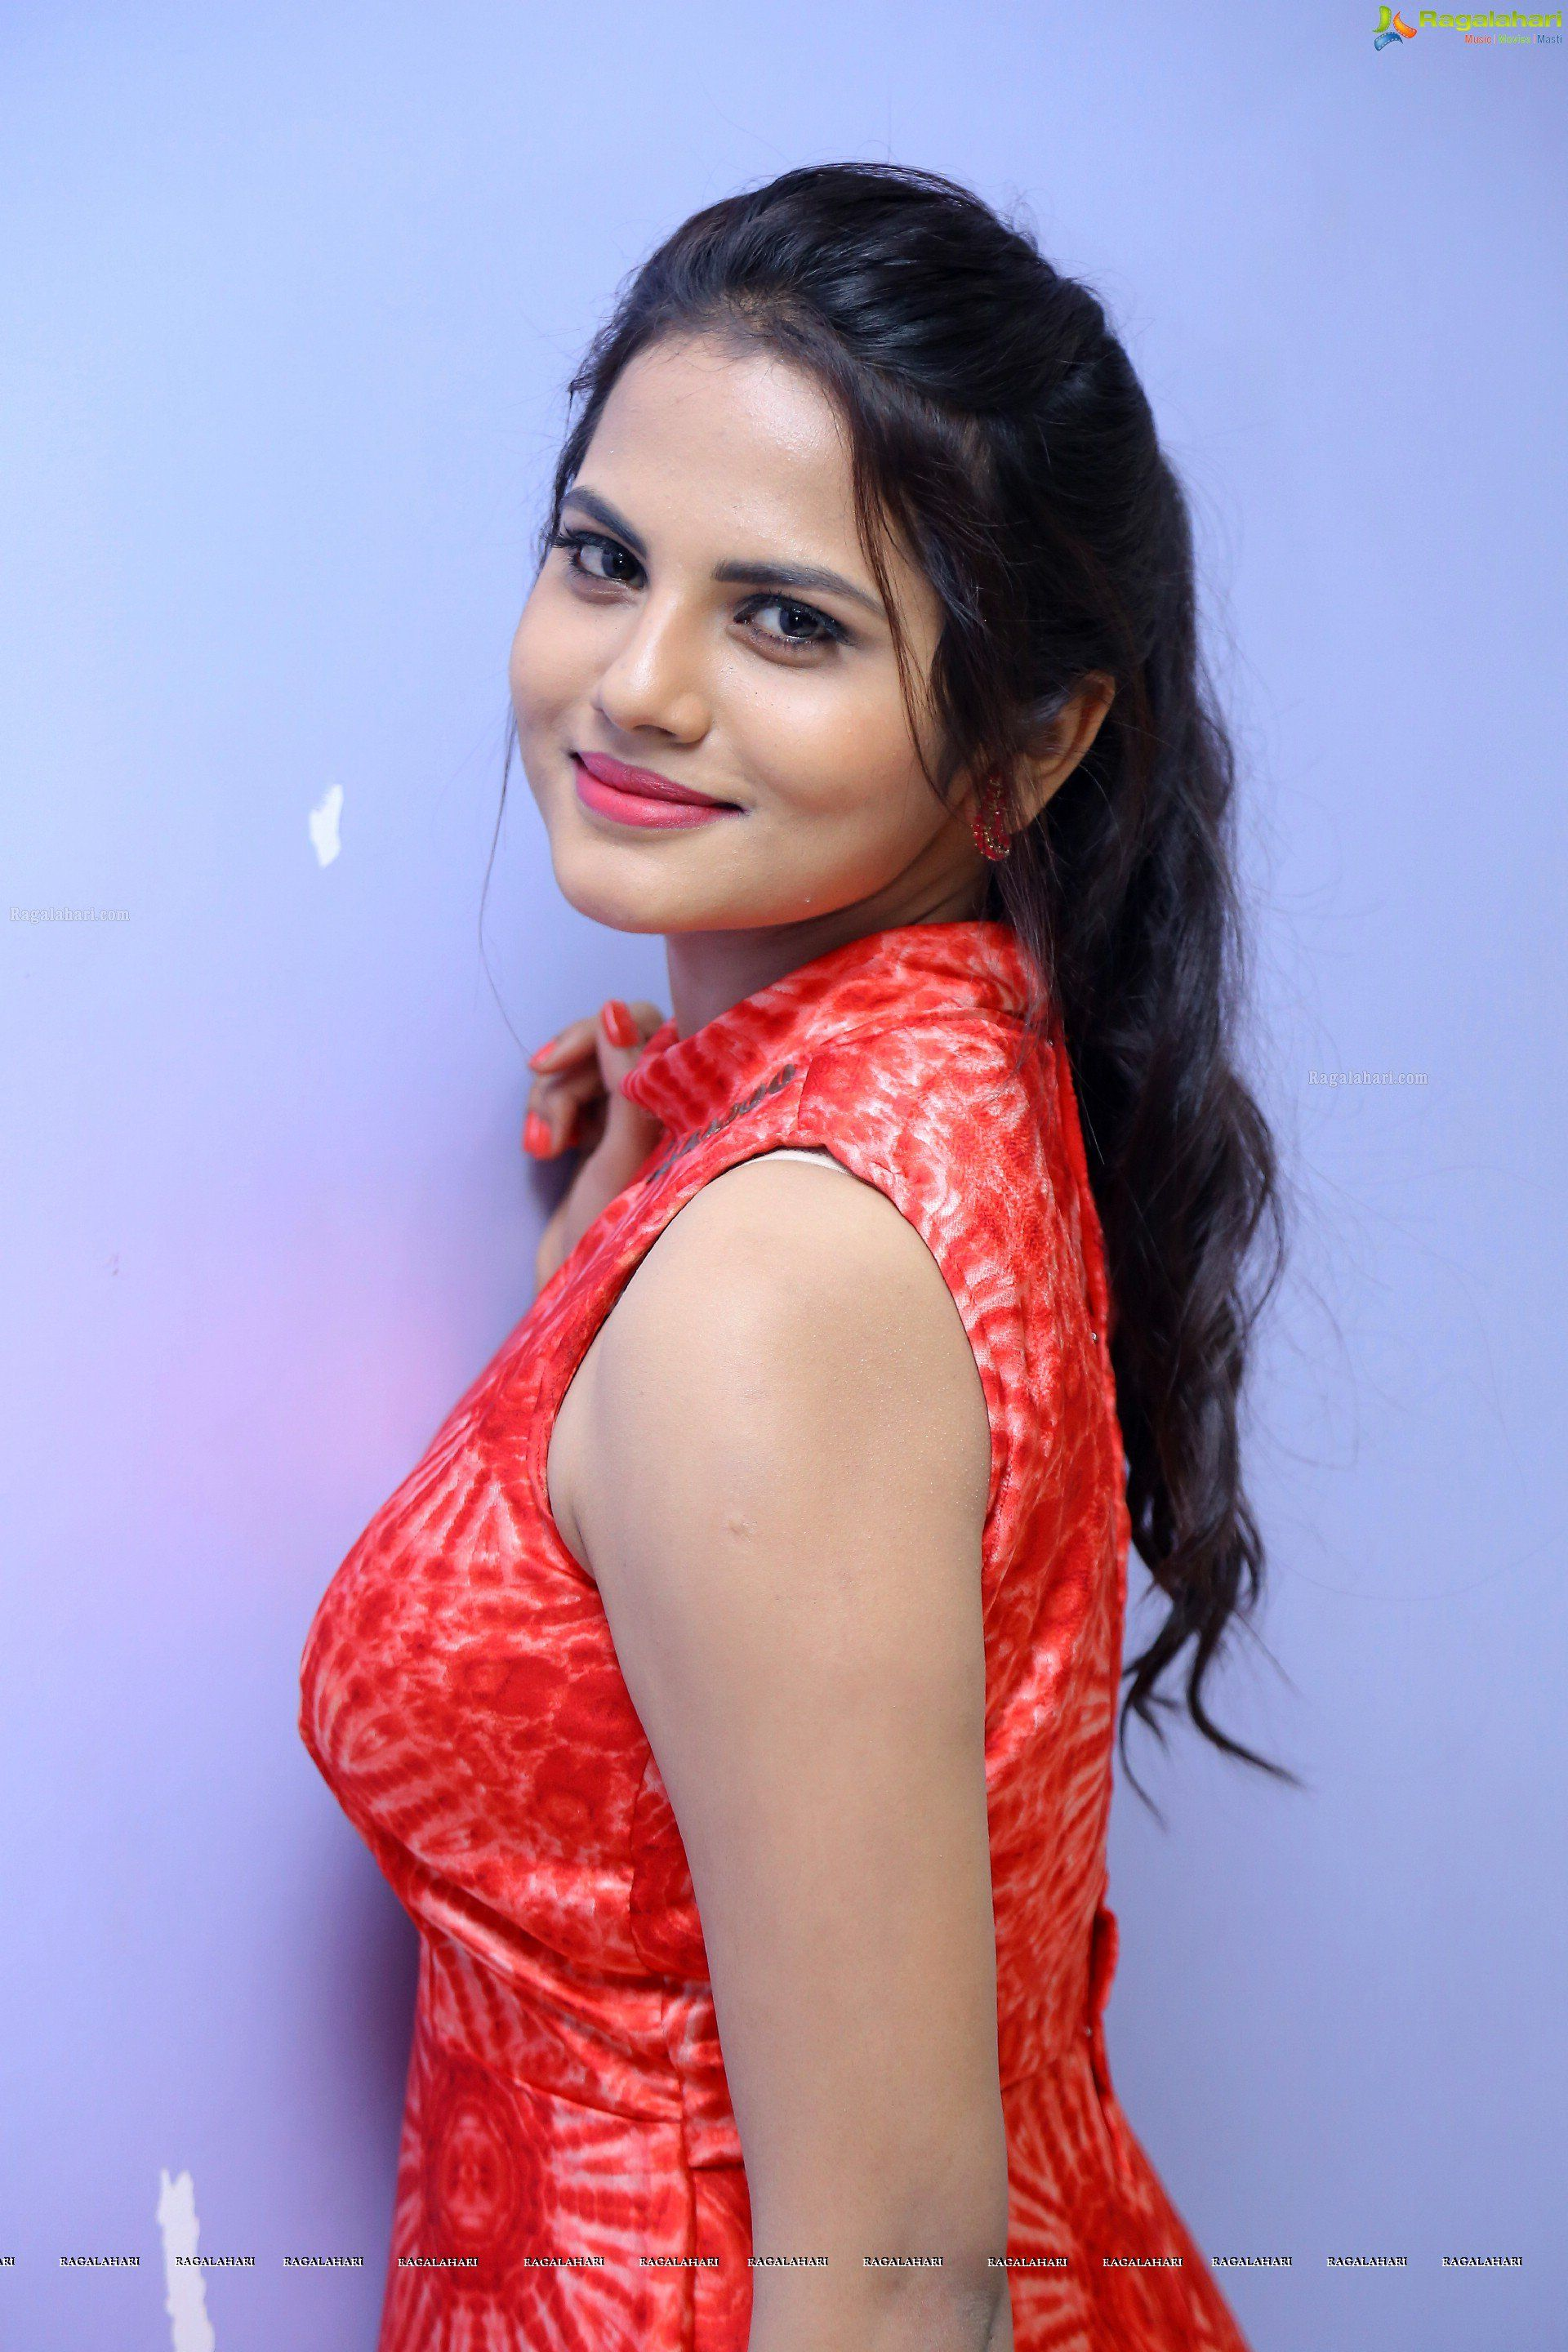 priyanka sharma at sarovaram audio release image 1 | telugu actress